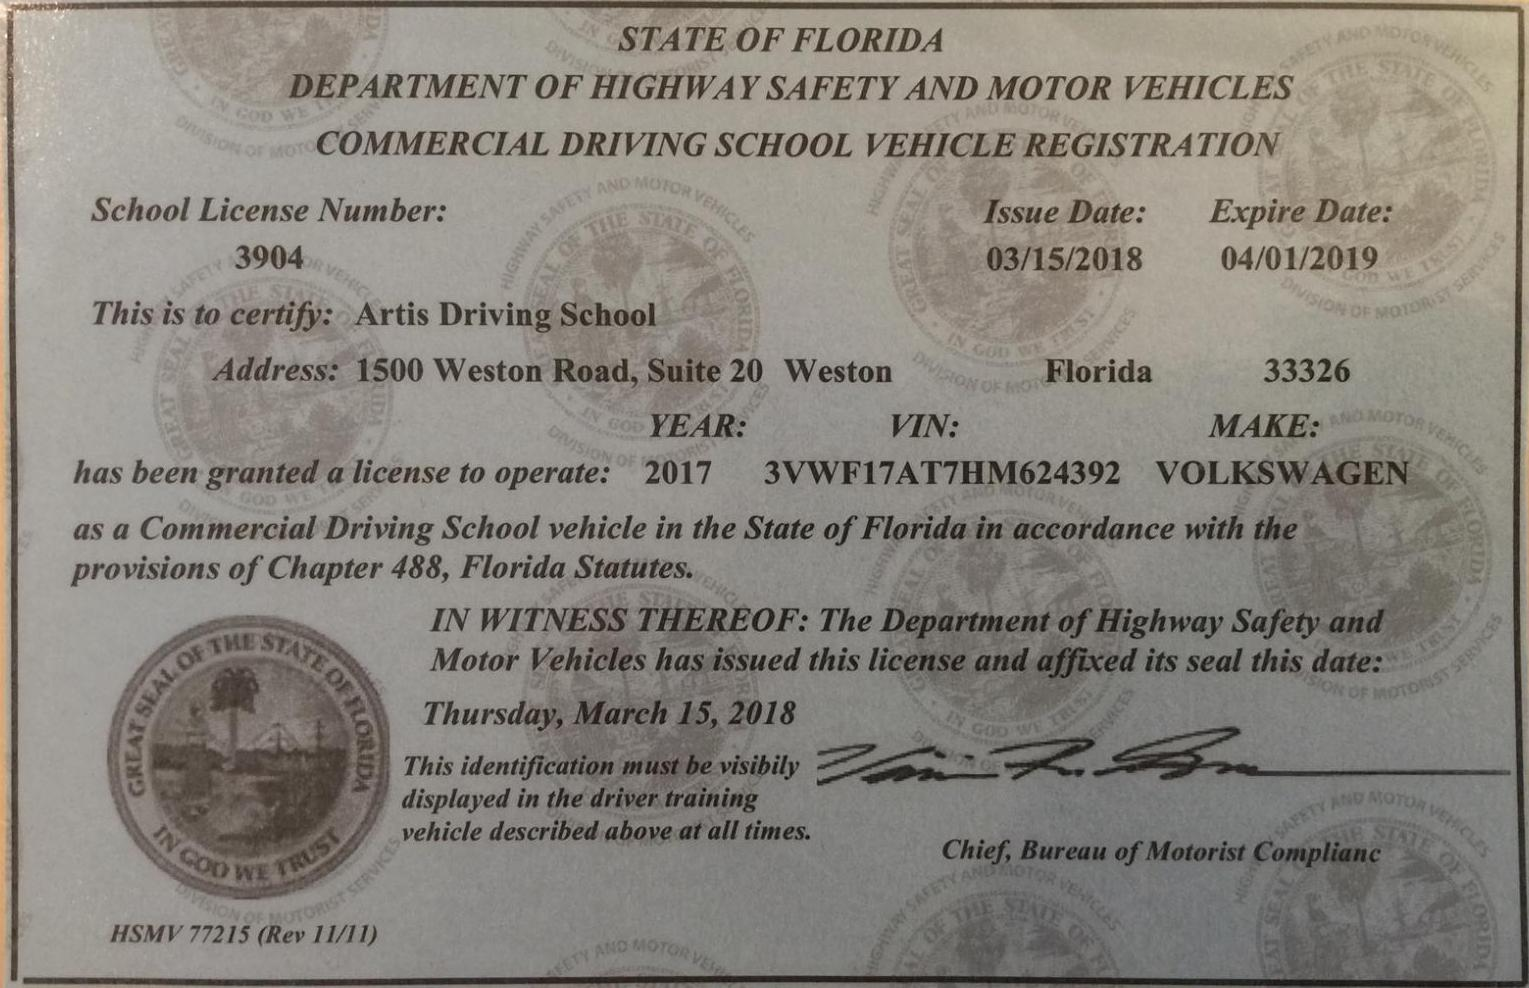 Artis driving for Florida department of motor vehicles drug and alcohol test